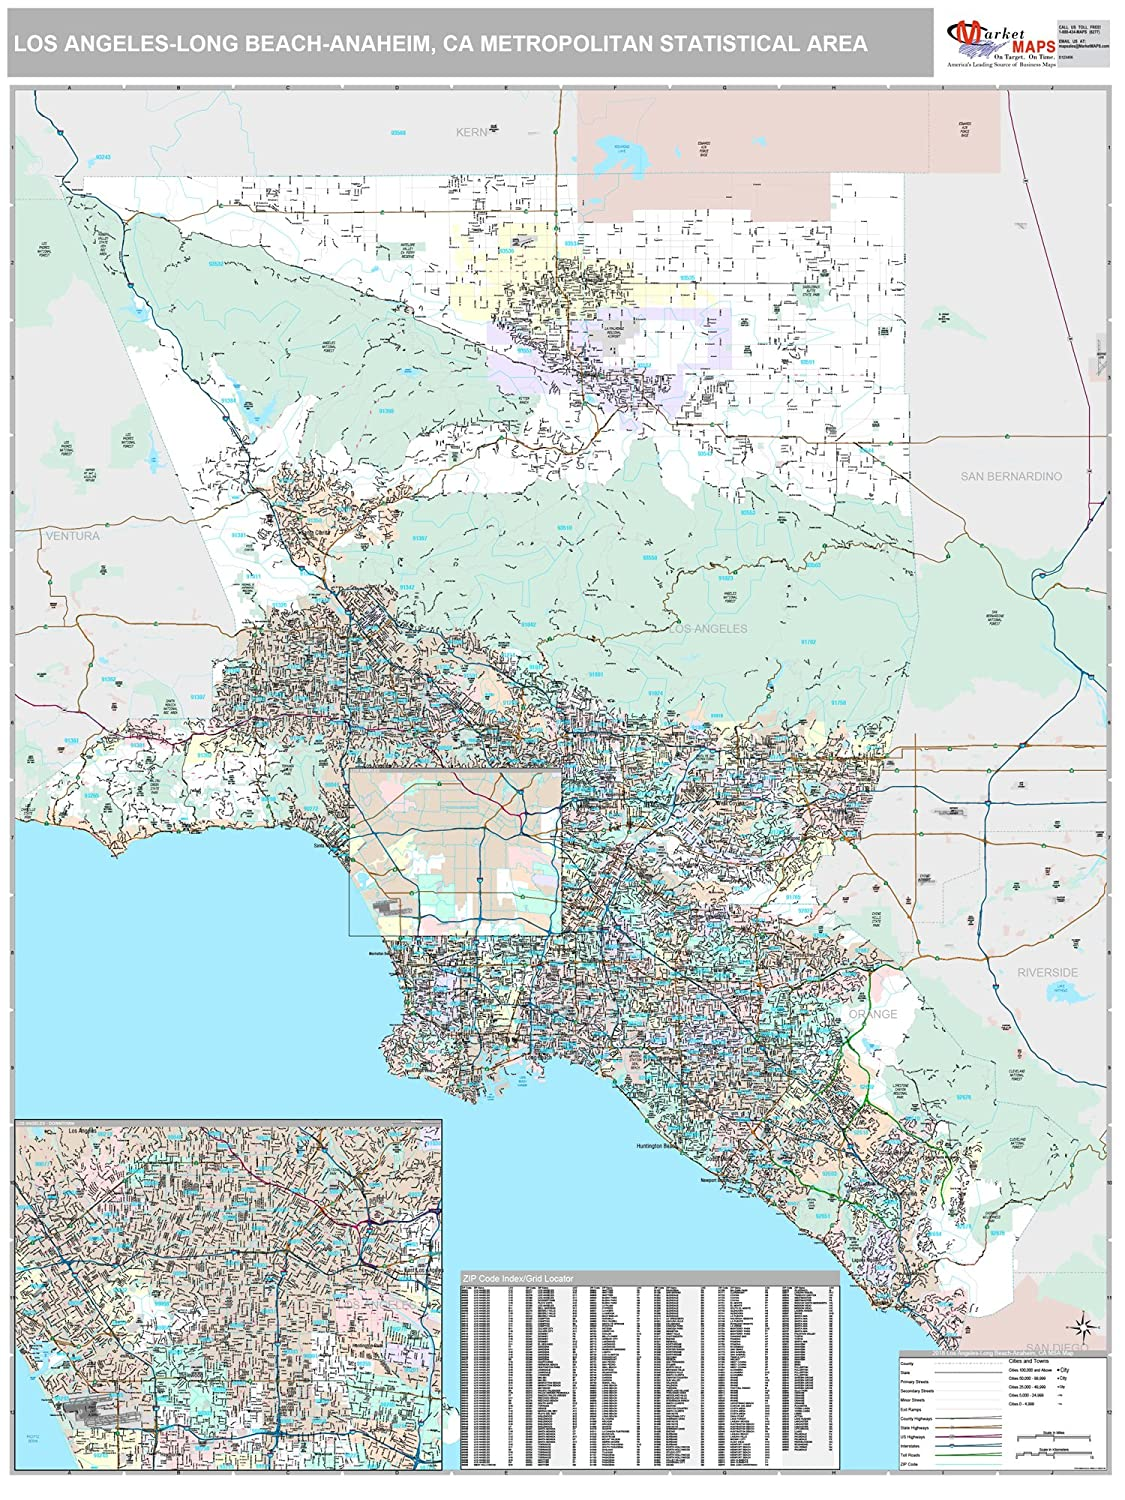 Amazon.com: MarketMAPS Los Angeles-Long Beach-Anaheim, CA ...